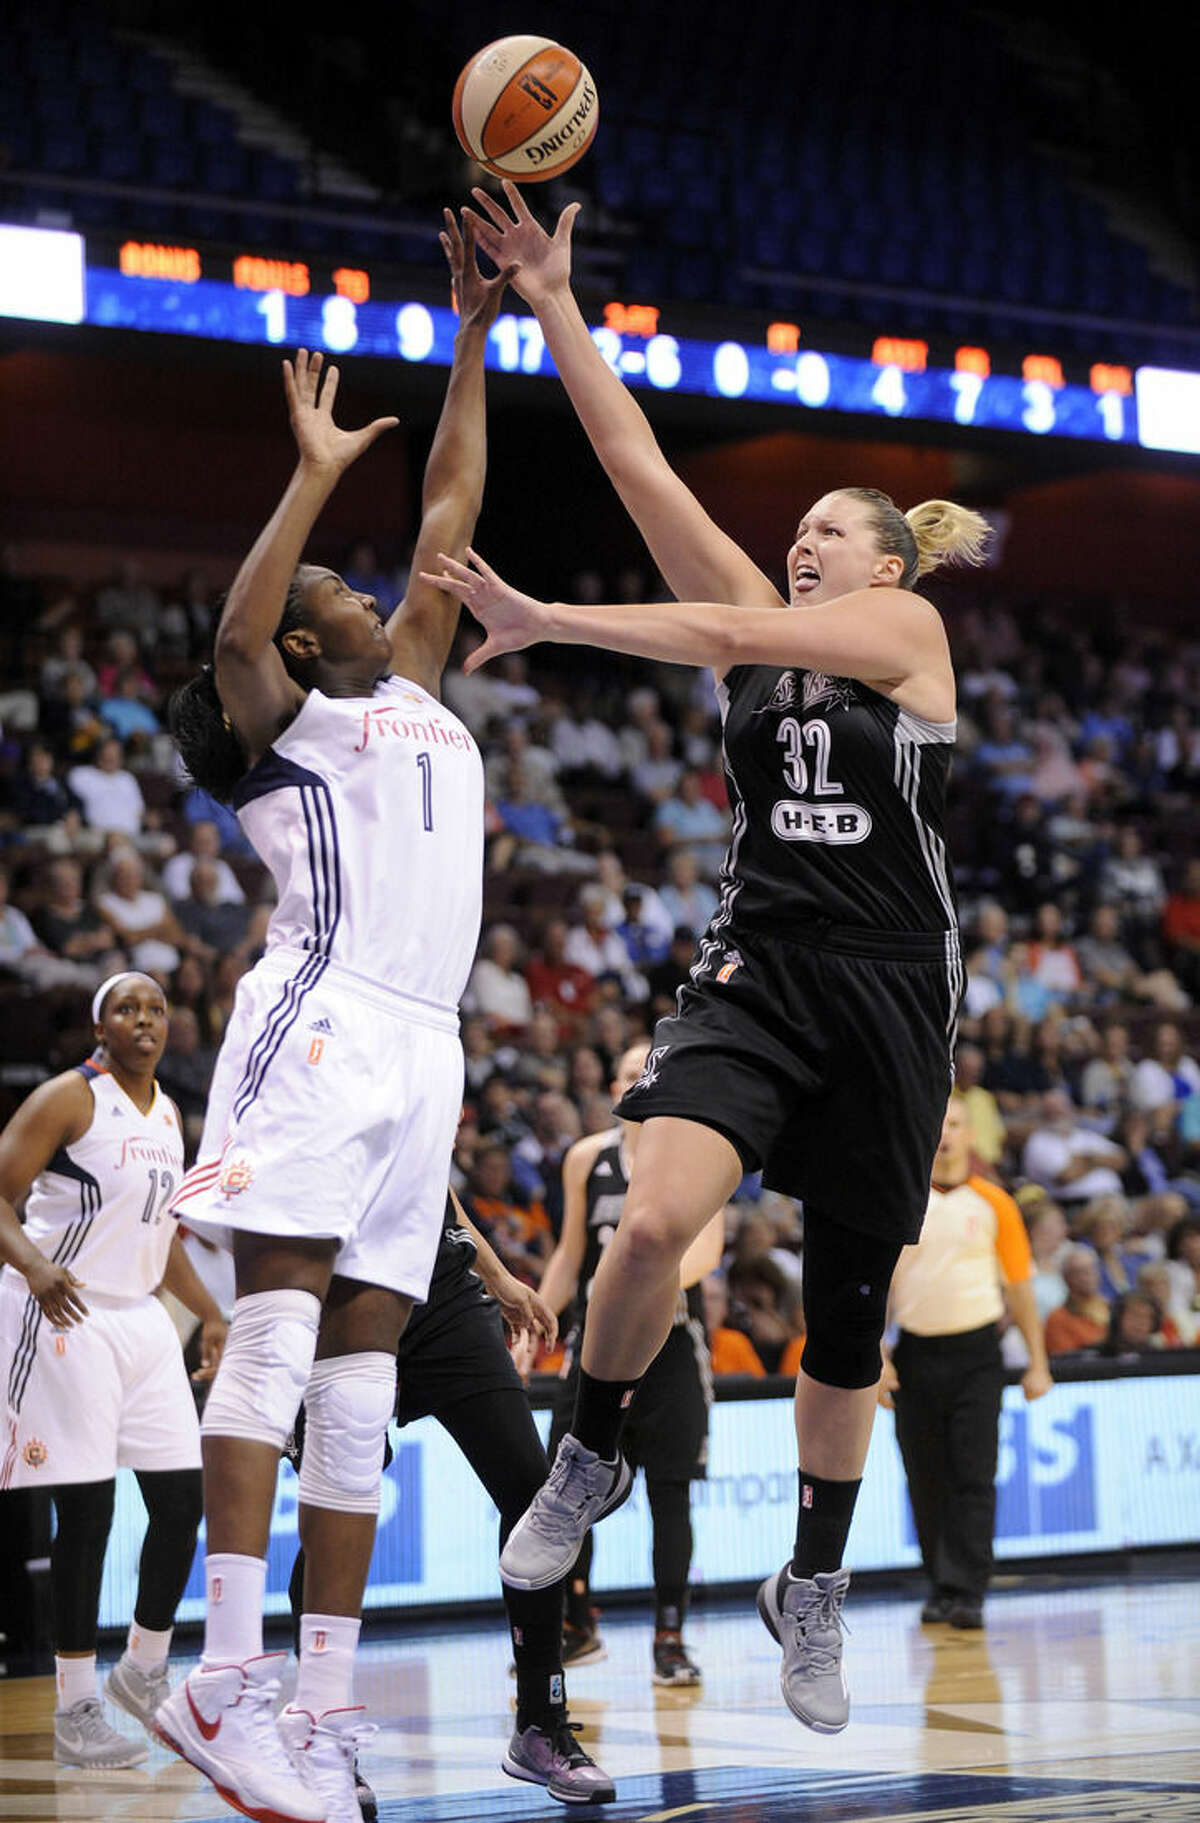 San Antonio Stars's Jayne Appel (32) shoots over Connecticut Sun's Elizabeth Williams (1) during the first half of an WNBA basketball game in Uncasville, Conn., on Tuesday, Aug. 4, 2015. (AP Photo/Fred Beckham)